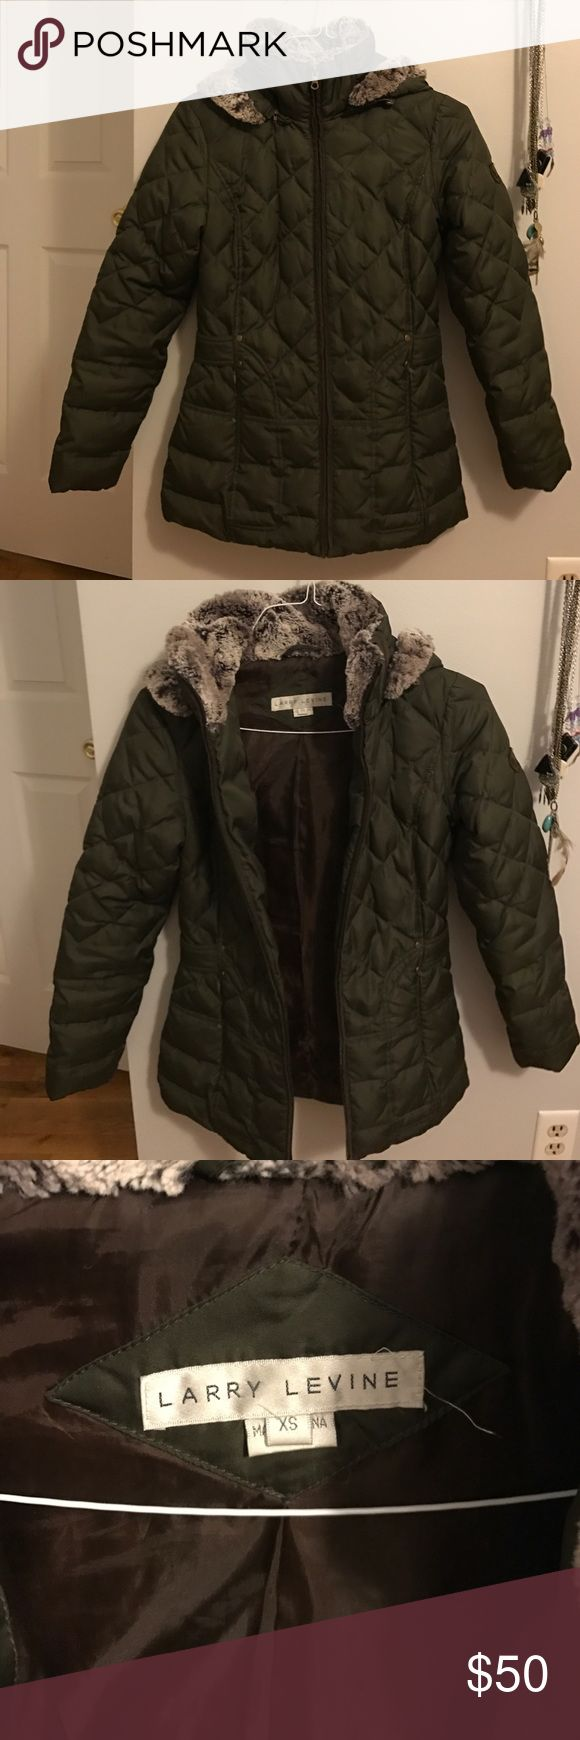 Larry Levine winter coat Down quilted forest green winter coat. With detachable fur-trimmed hood. Larry Levine Jackets & Coats Puffers